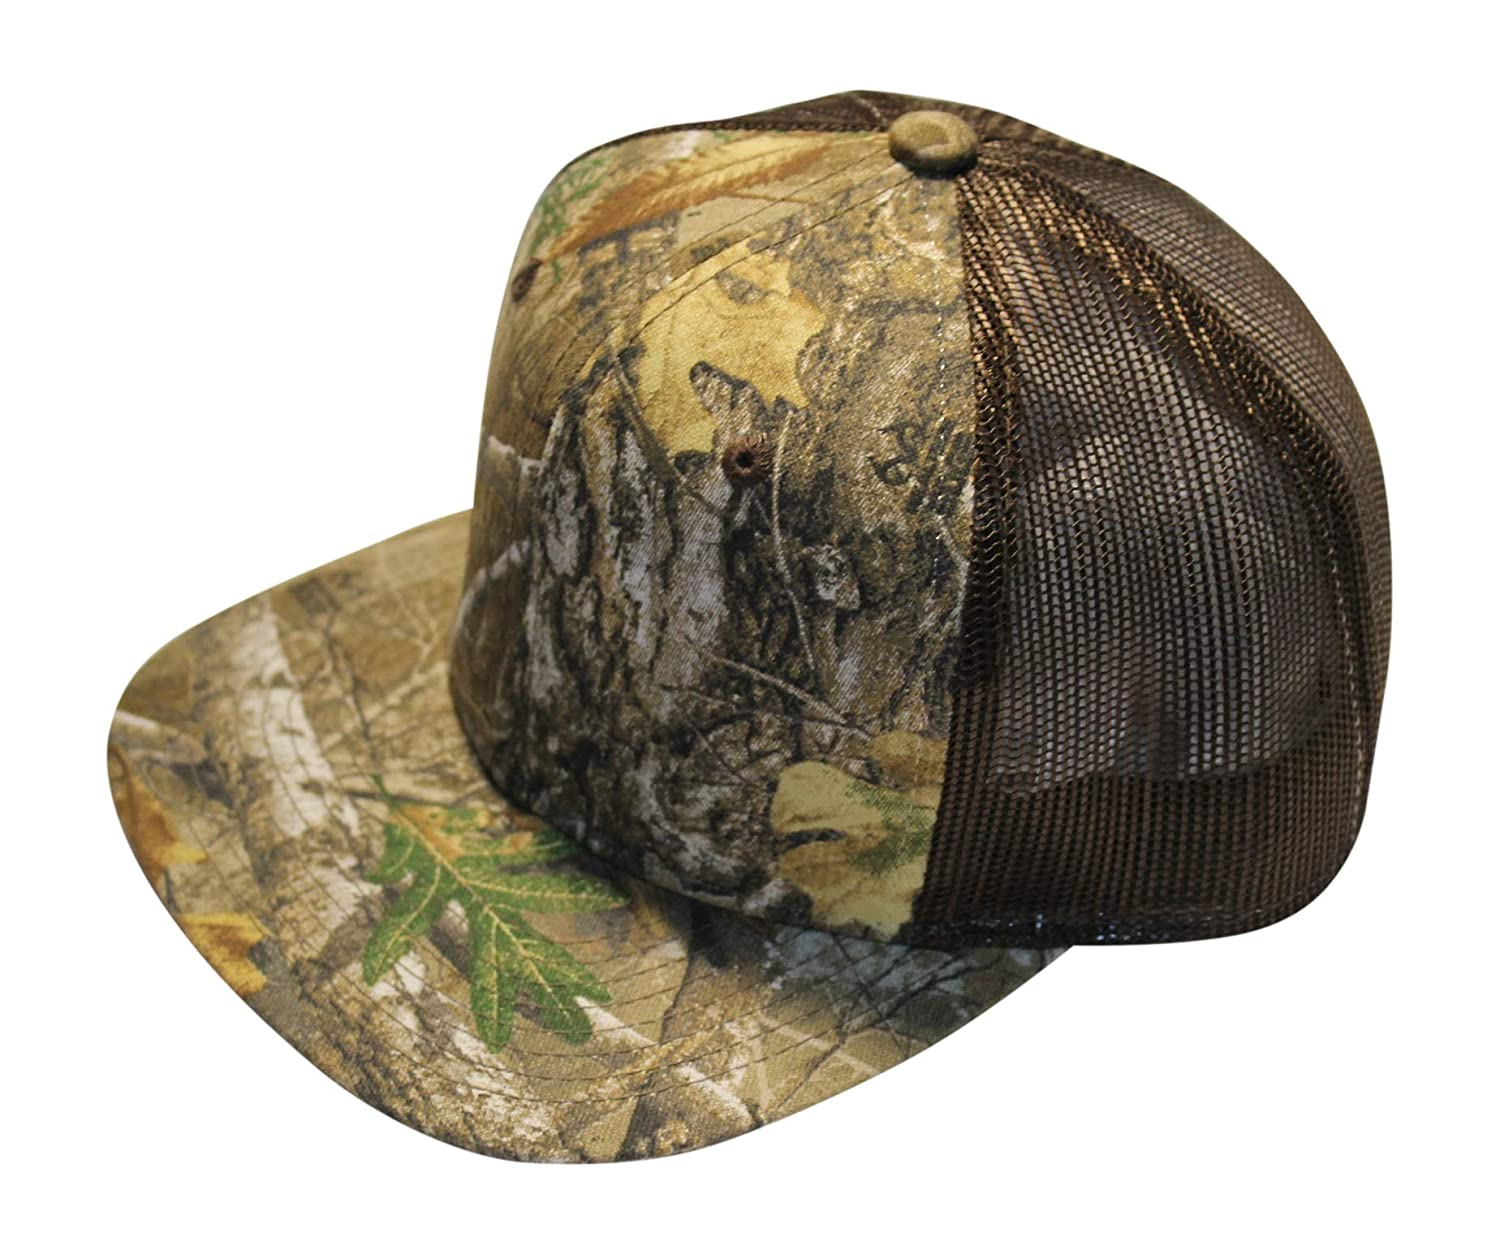 fdd8173f9a5972 Amazon.com : Realtree Camo Trucker Hat Meshback Snapback Cap : Sports &  Outdoors